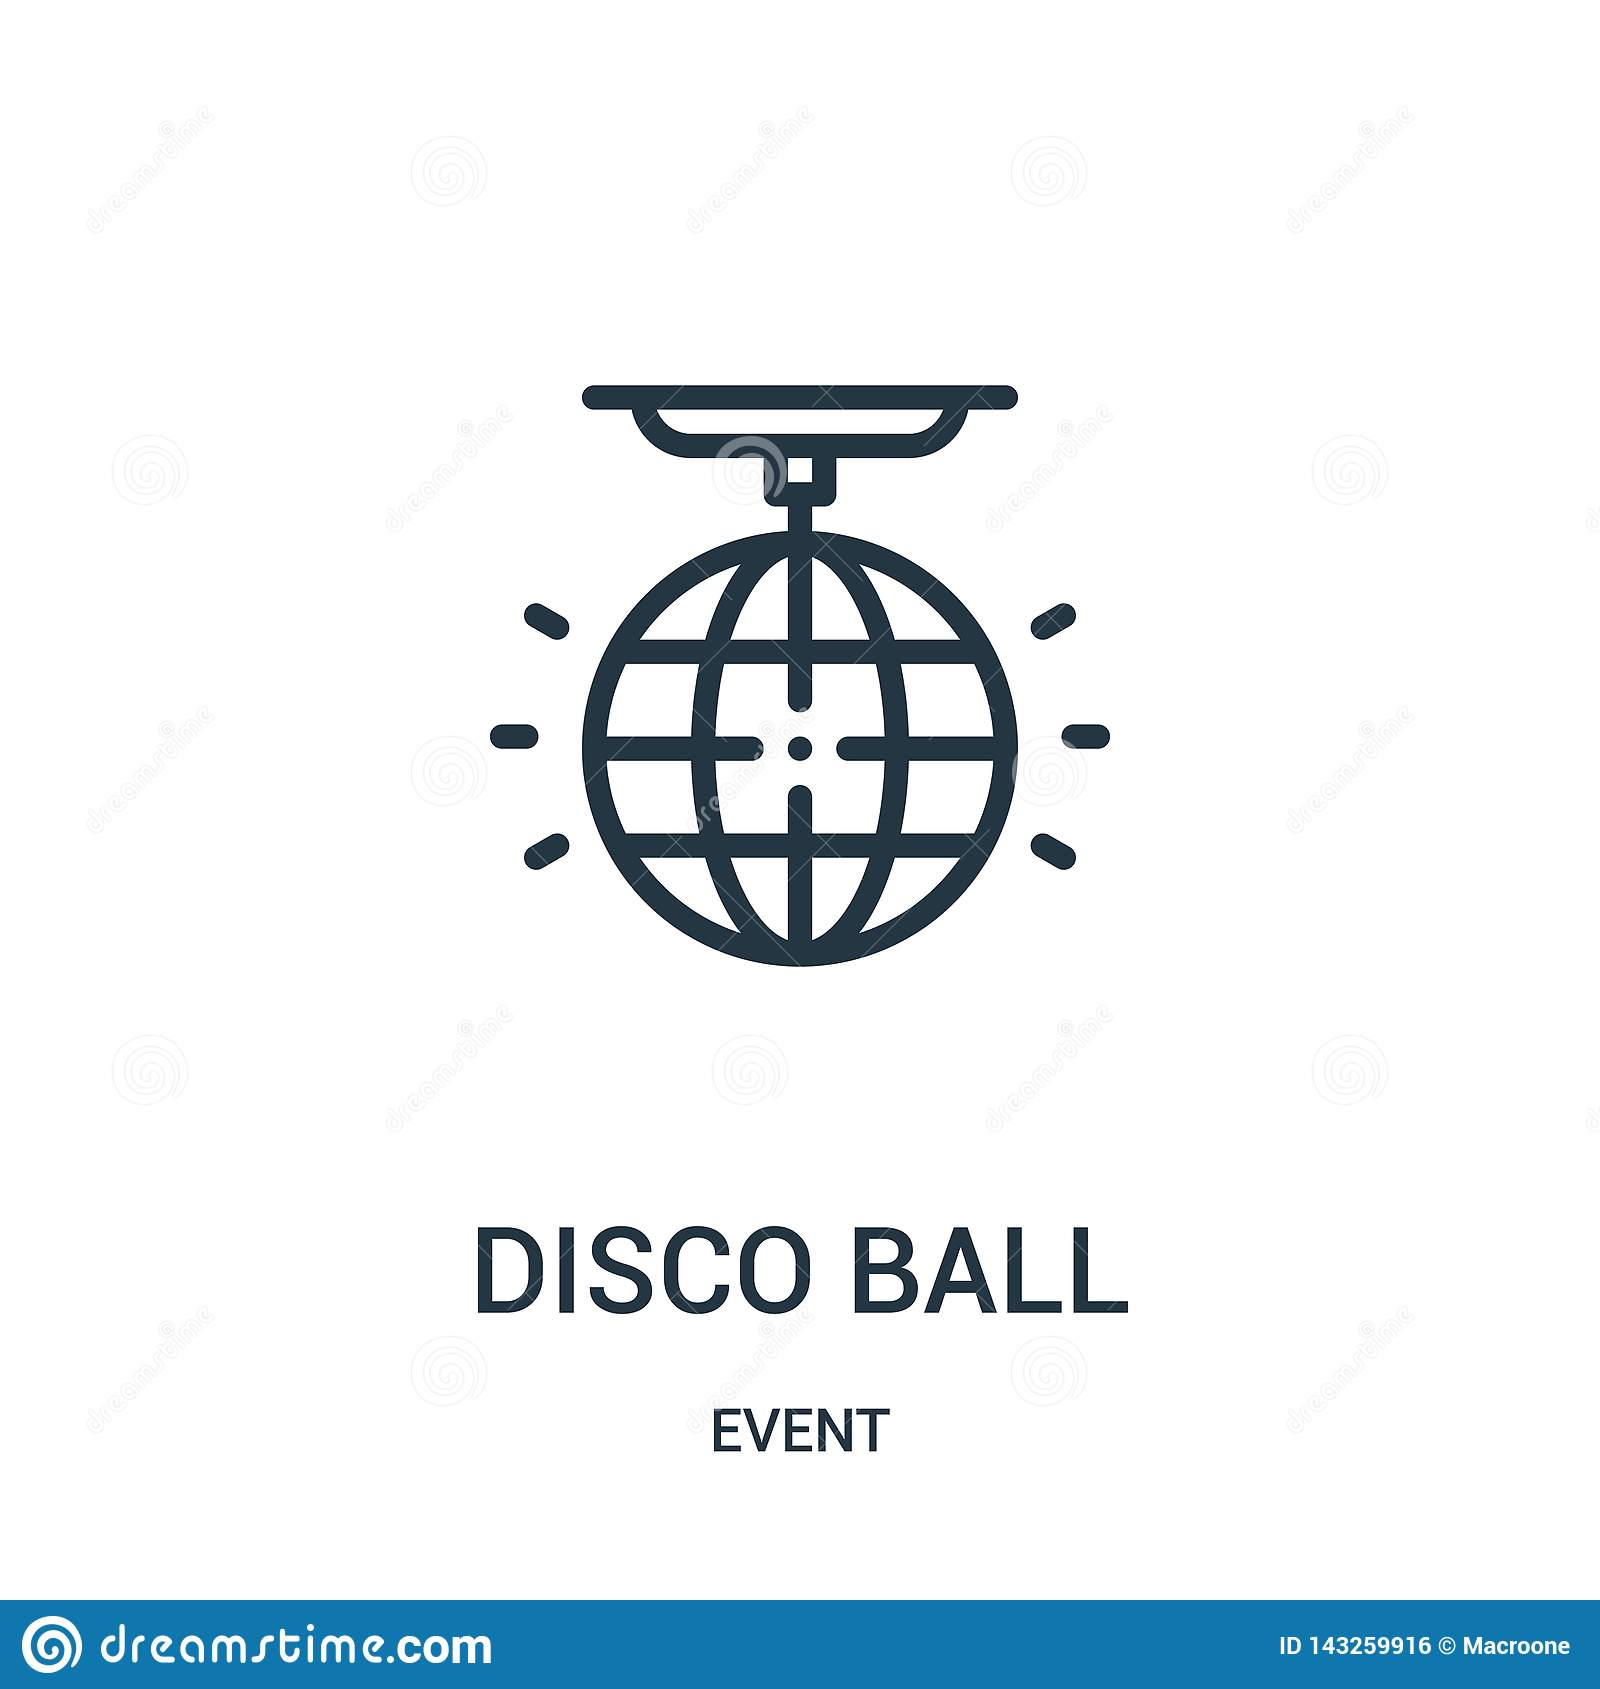 disco ball icon vector from event collection. Thin line disco ball outline icon vector illustration